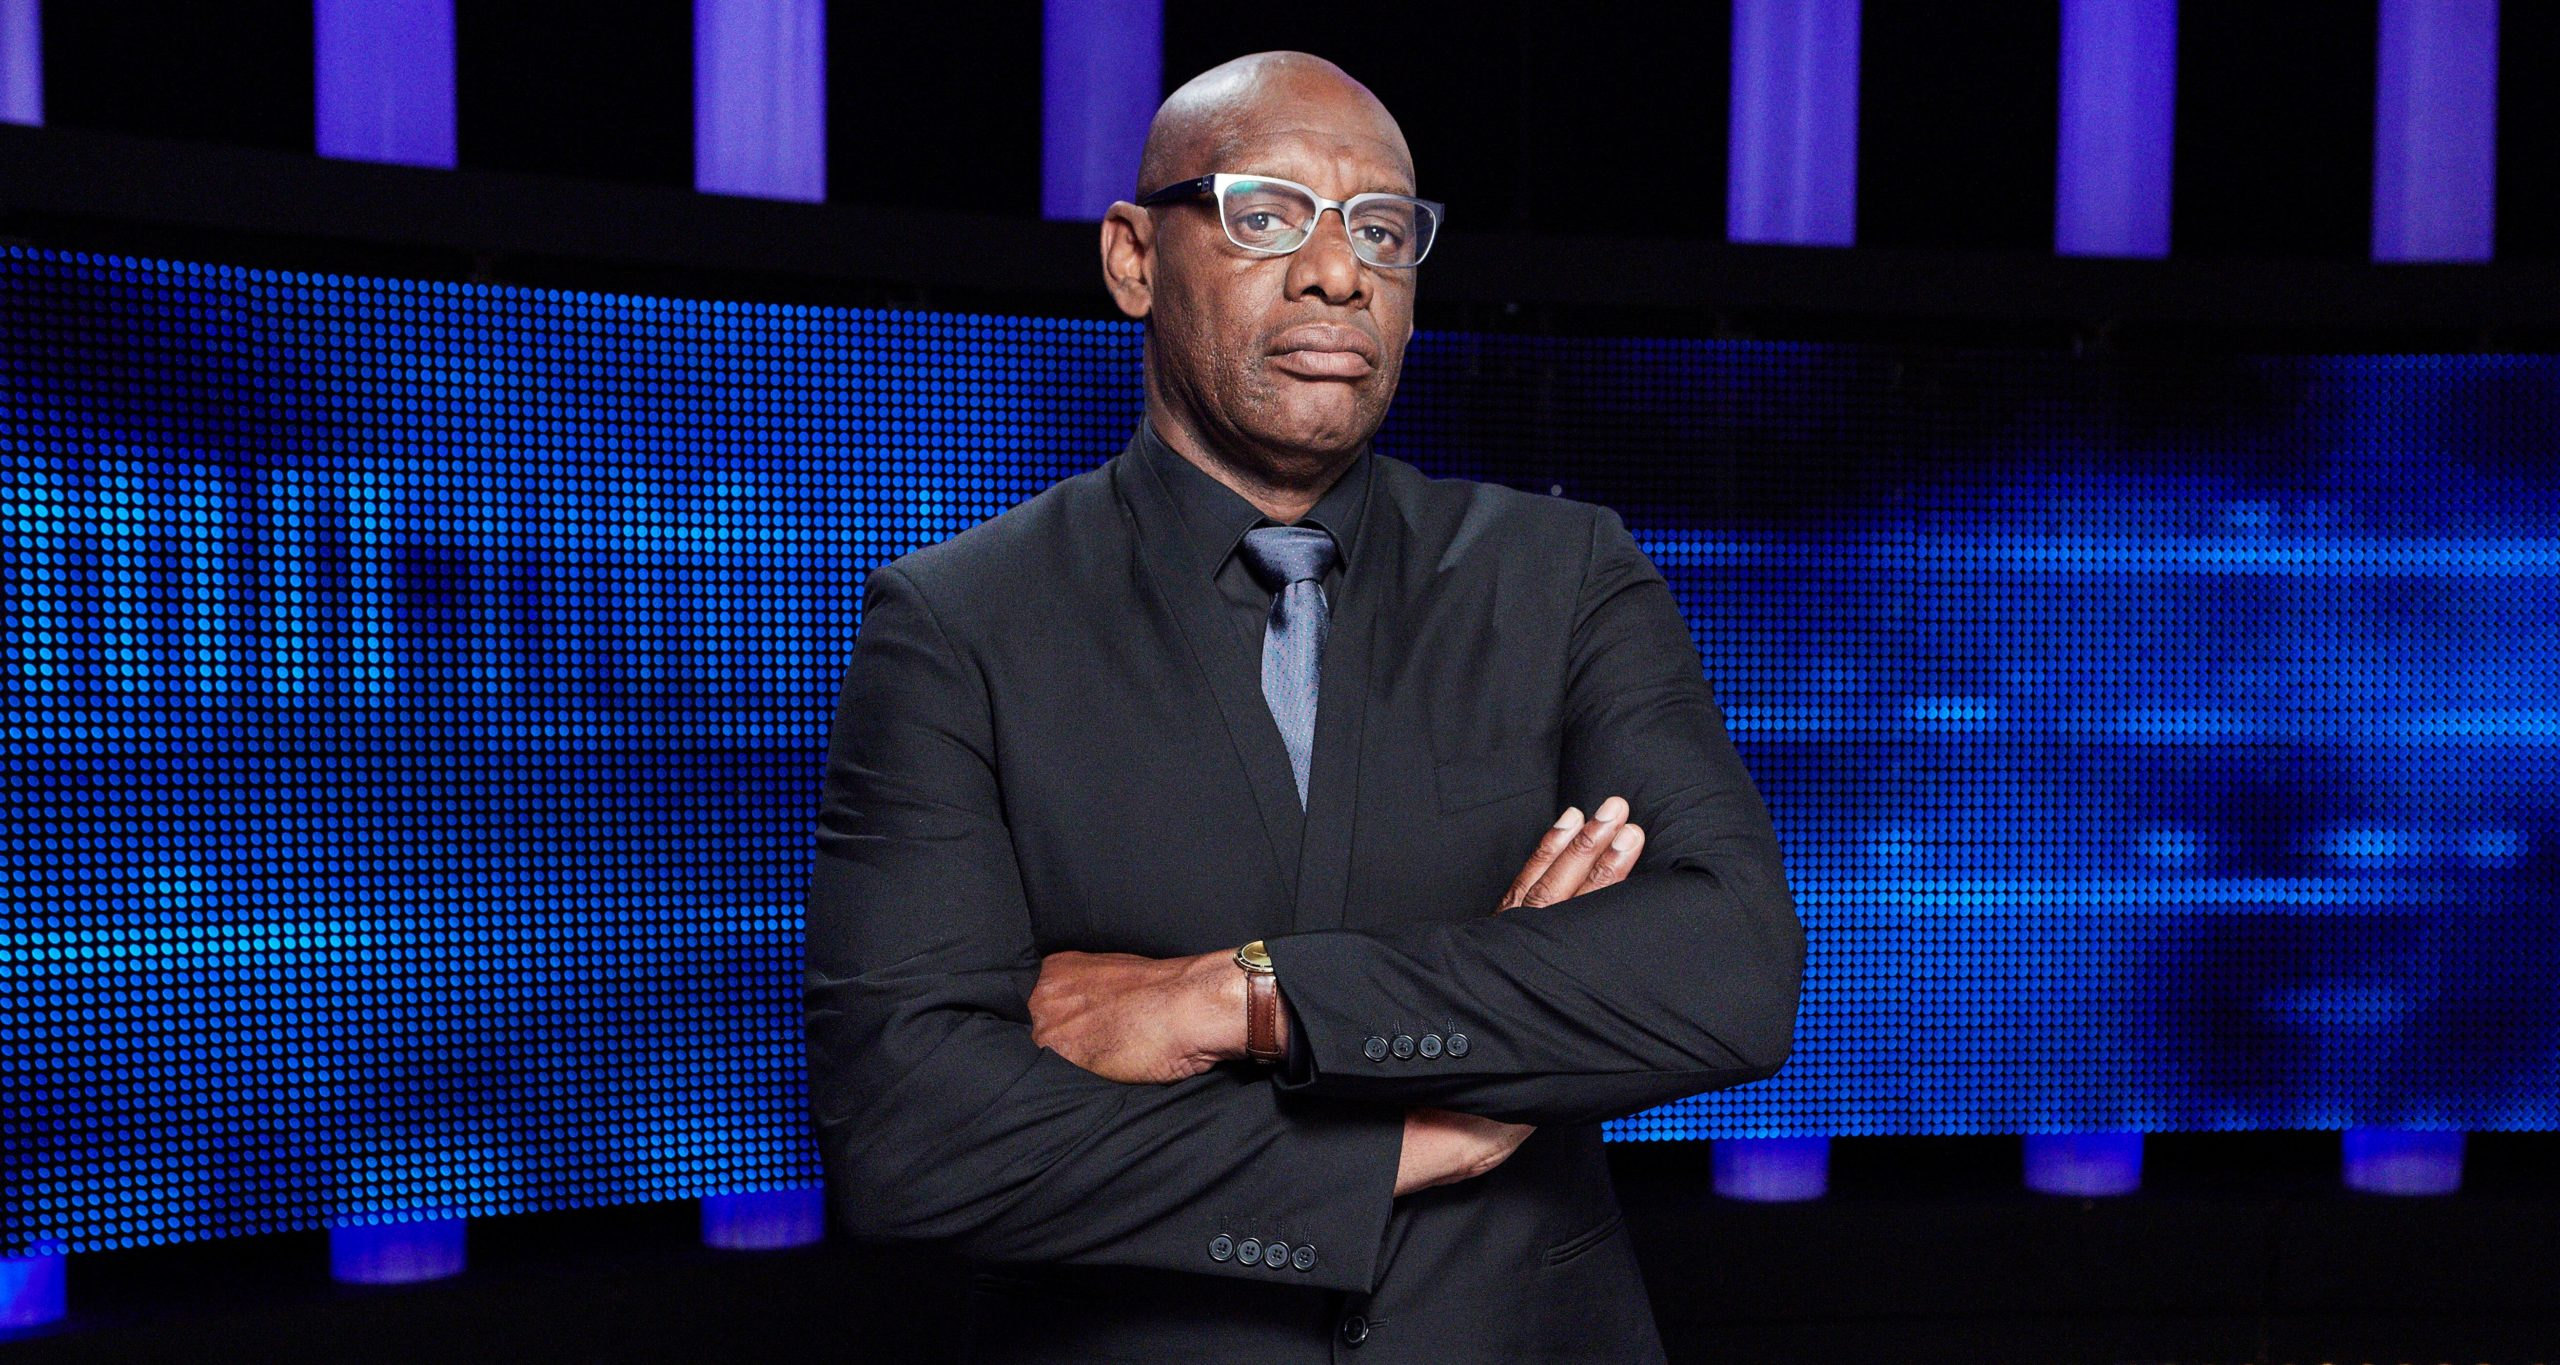 The Chase fans again call for Shaun to be sacked after 'most humiliating' performance yet